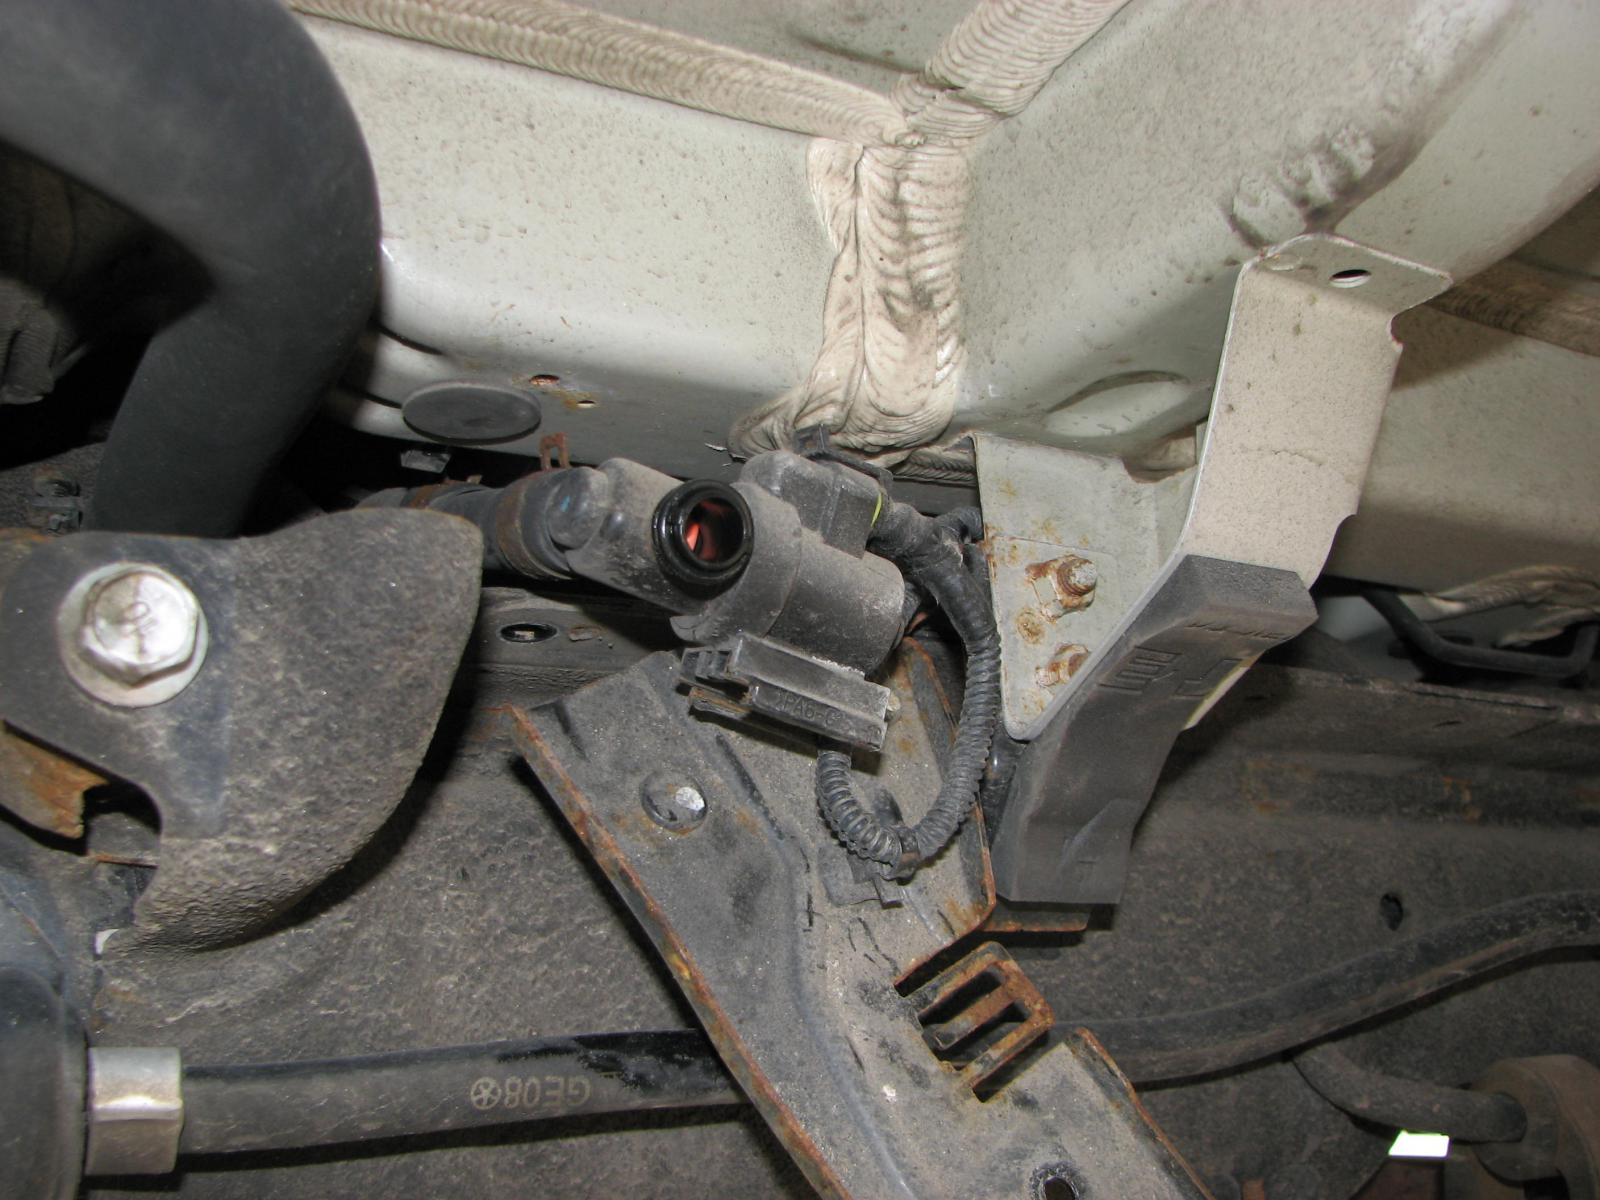 Starter Location 2005 Honda Crv also R56 Fuel Filter Replacement as well 1989 Jeep Cherokee Wiring Diagram besides Sequoia Fuel Filter Location moreover Nissan Throttle Control Motor Relay Location. on kia sedona fuel tank wiring diagram